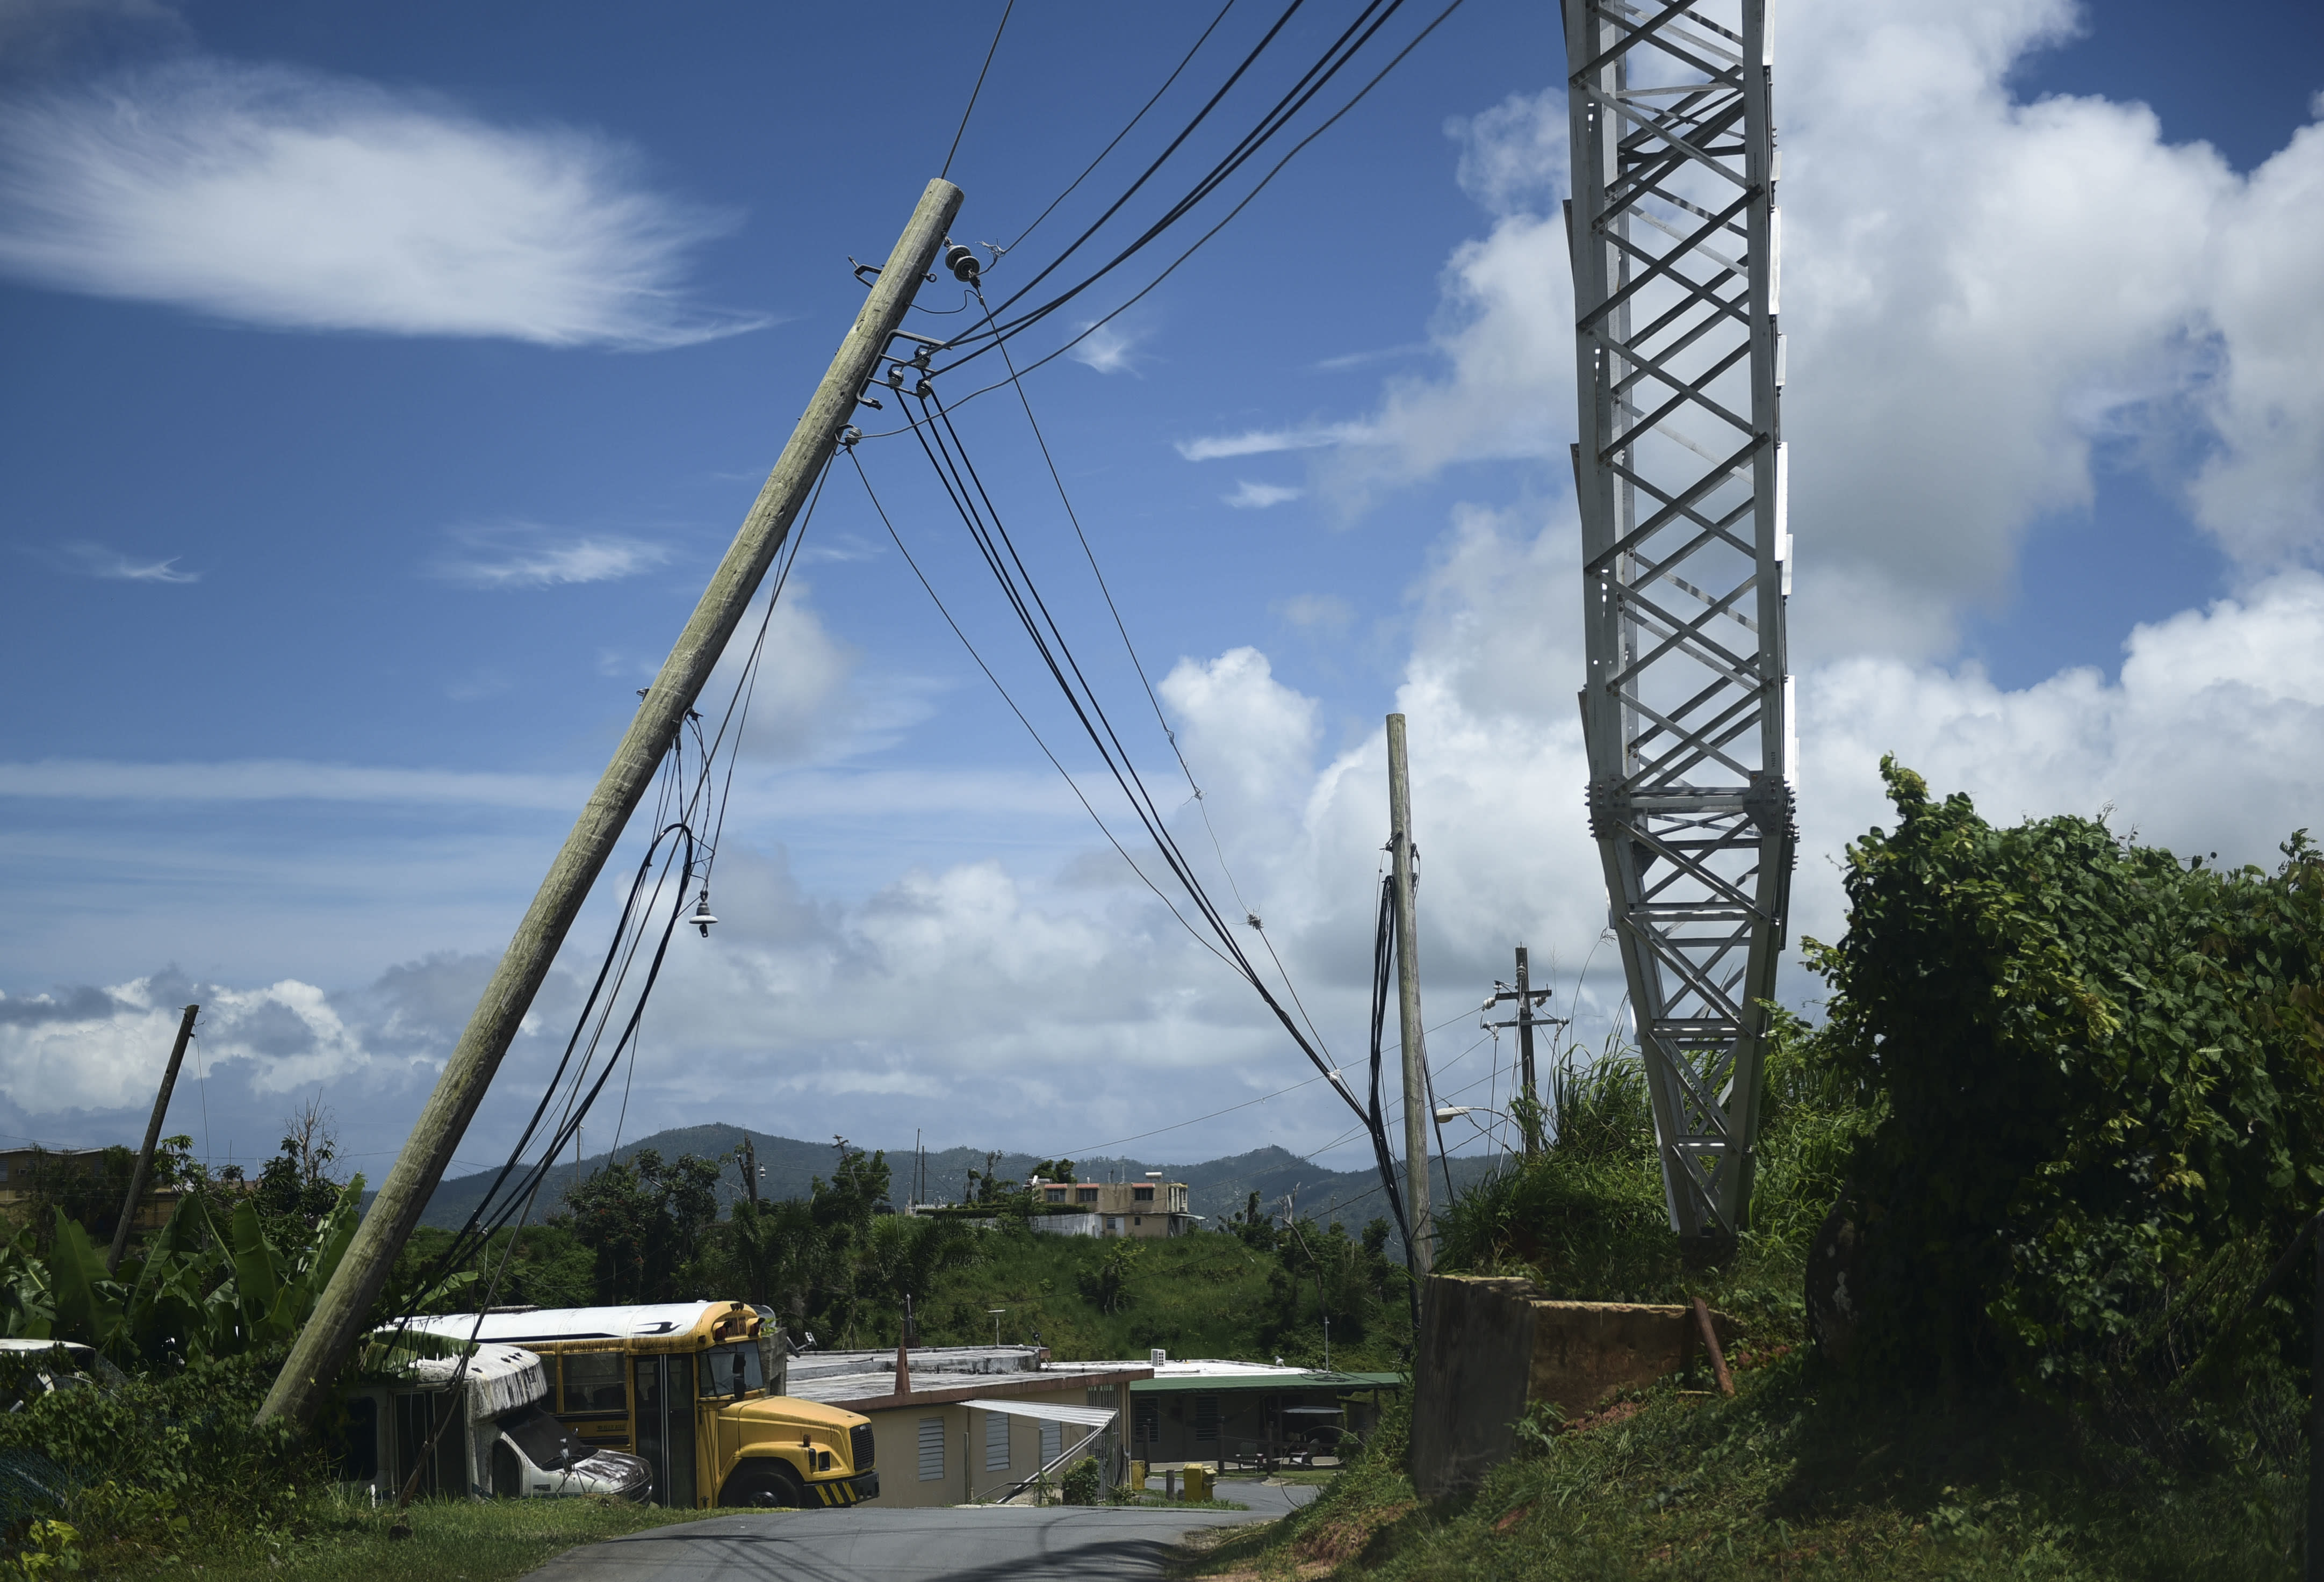 New Puerto Rico governor pledges to scrutinize all contracts